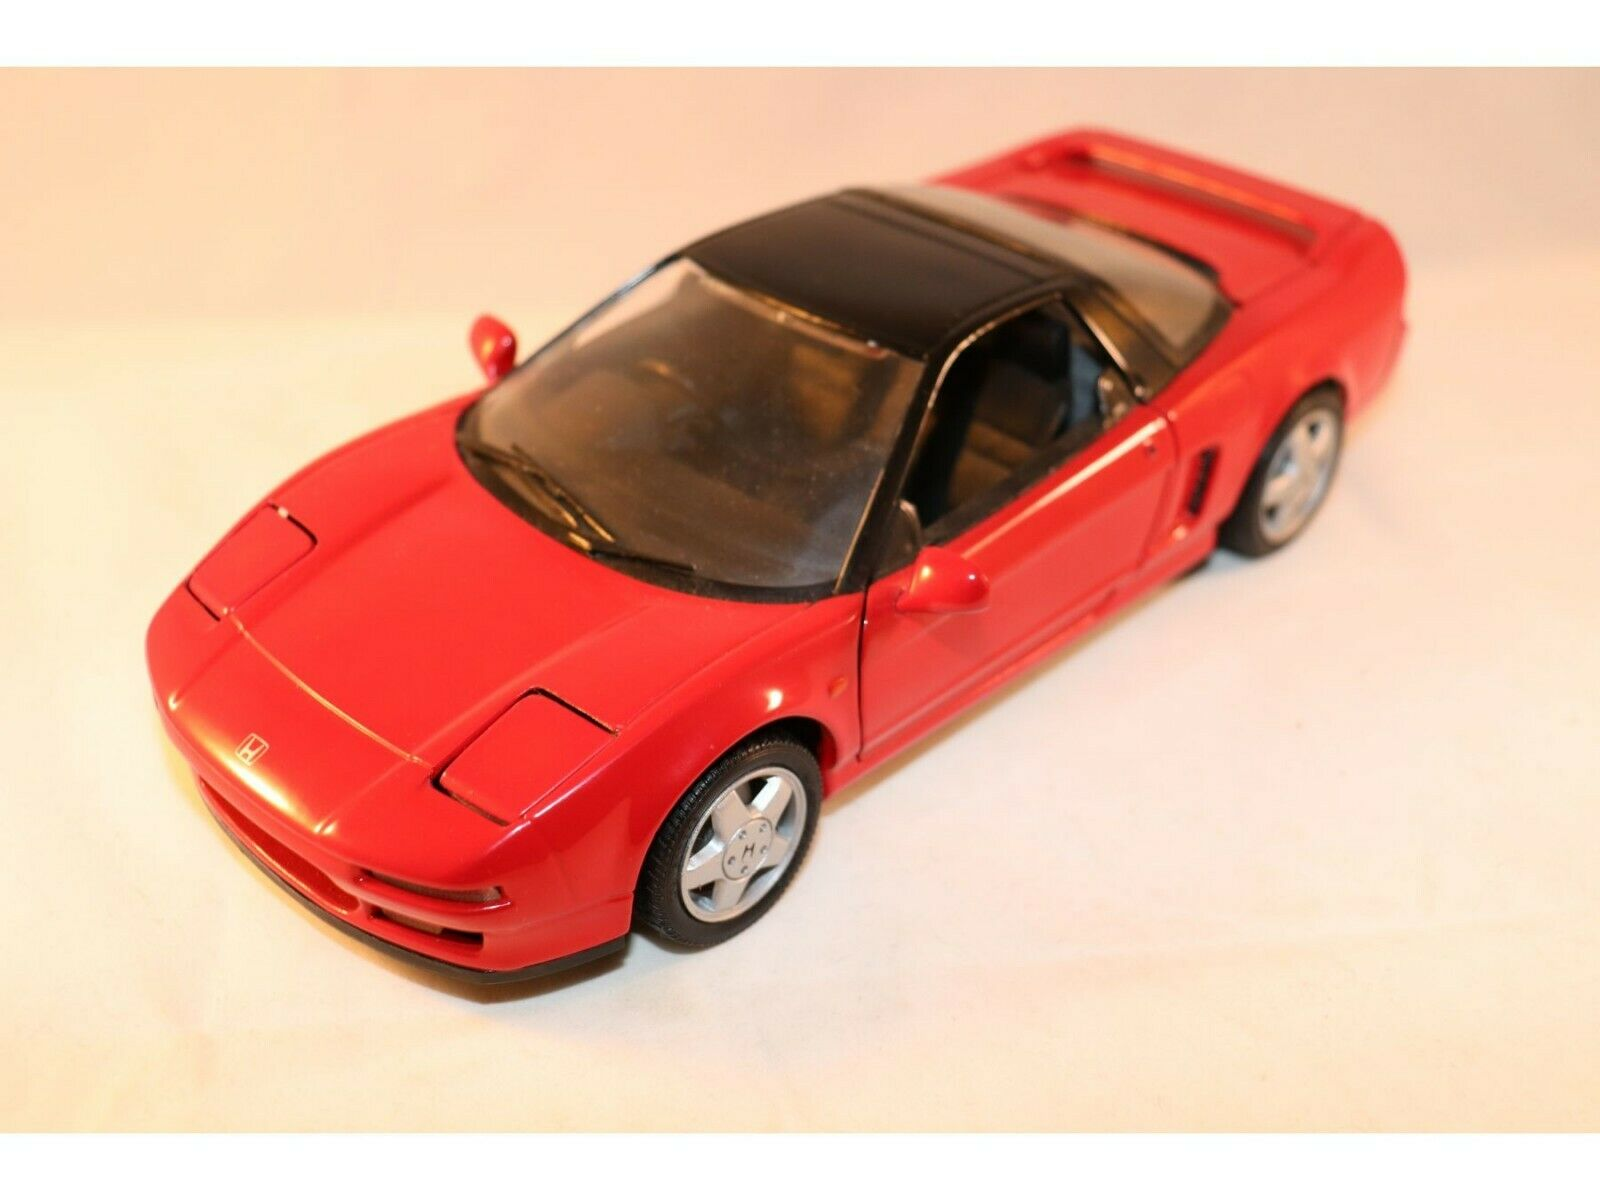 Kyosho 7001 Honda NSX DOHC VTEC 1 18 Red in 99% mint condition